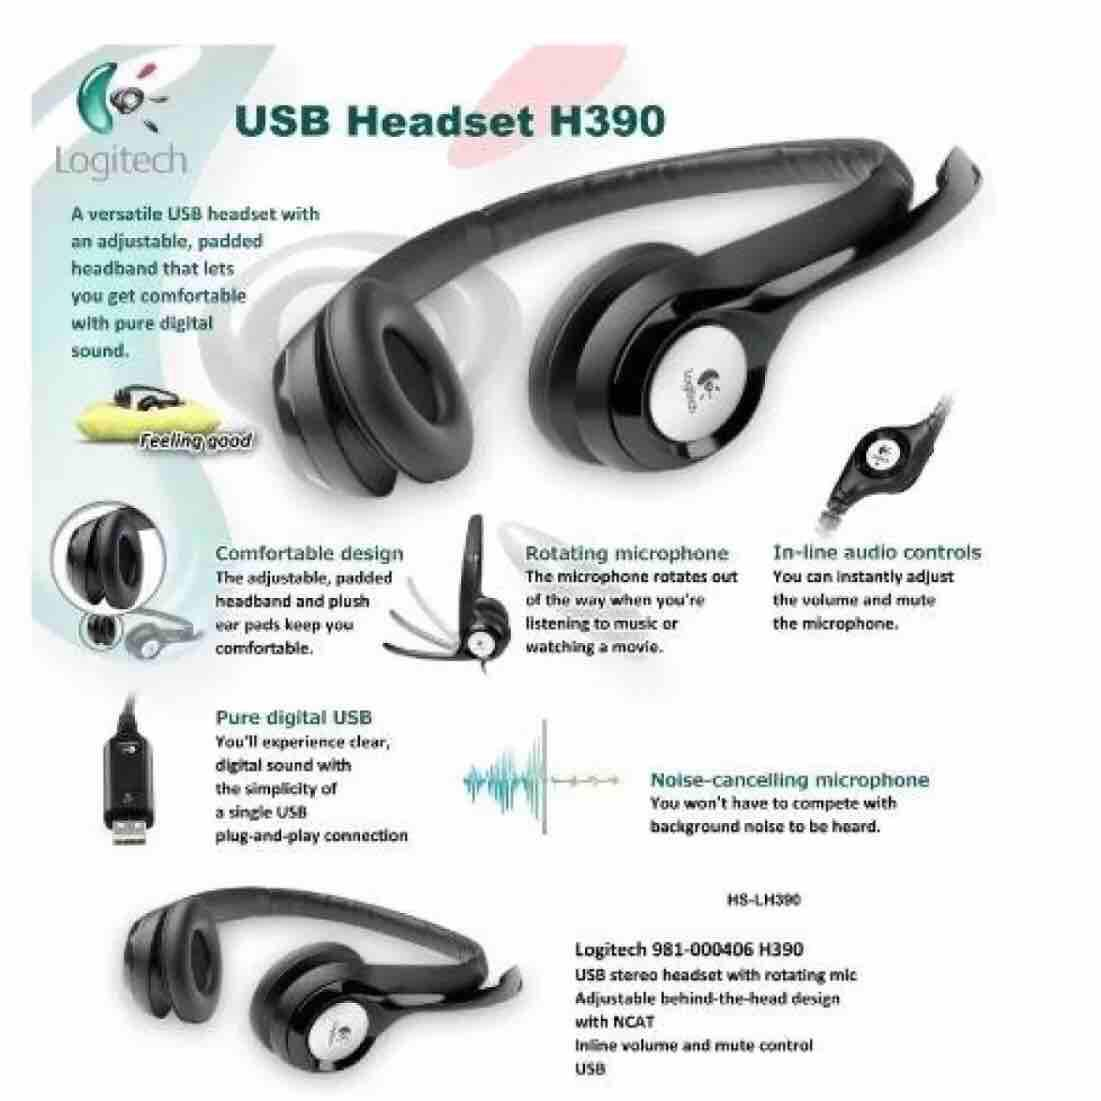 Logitech H390 Comfort USB Headset with Noise Cancelling Mic (Black)